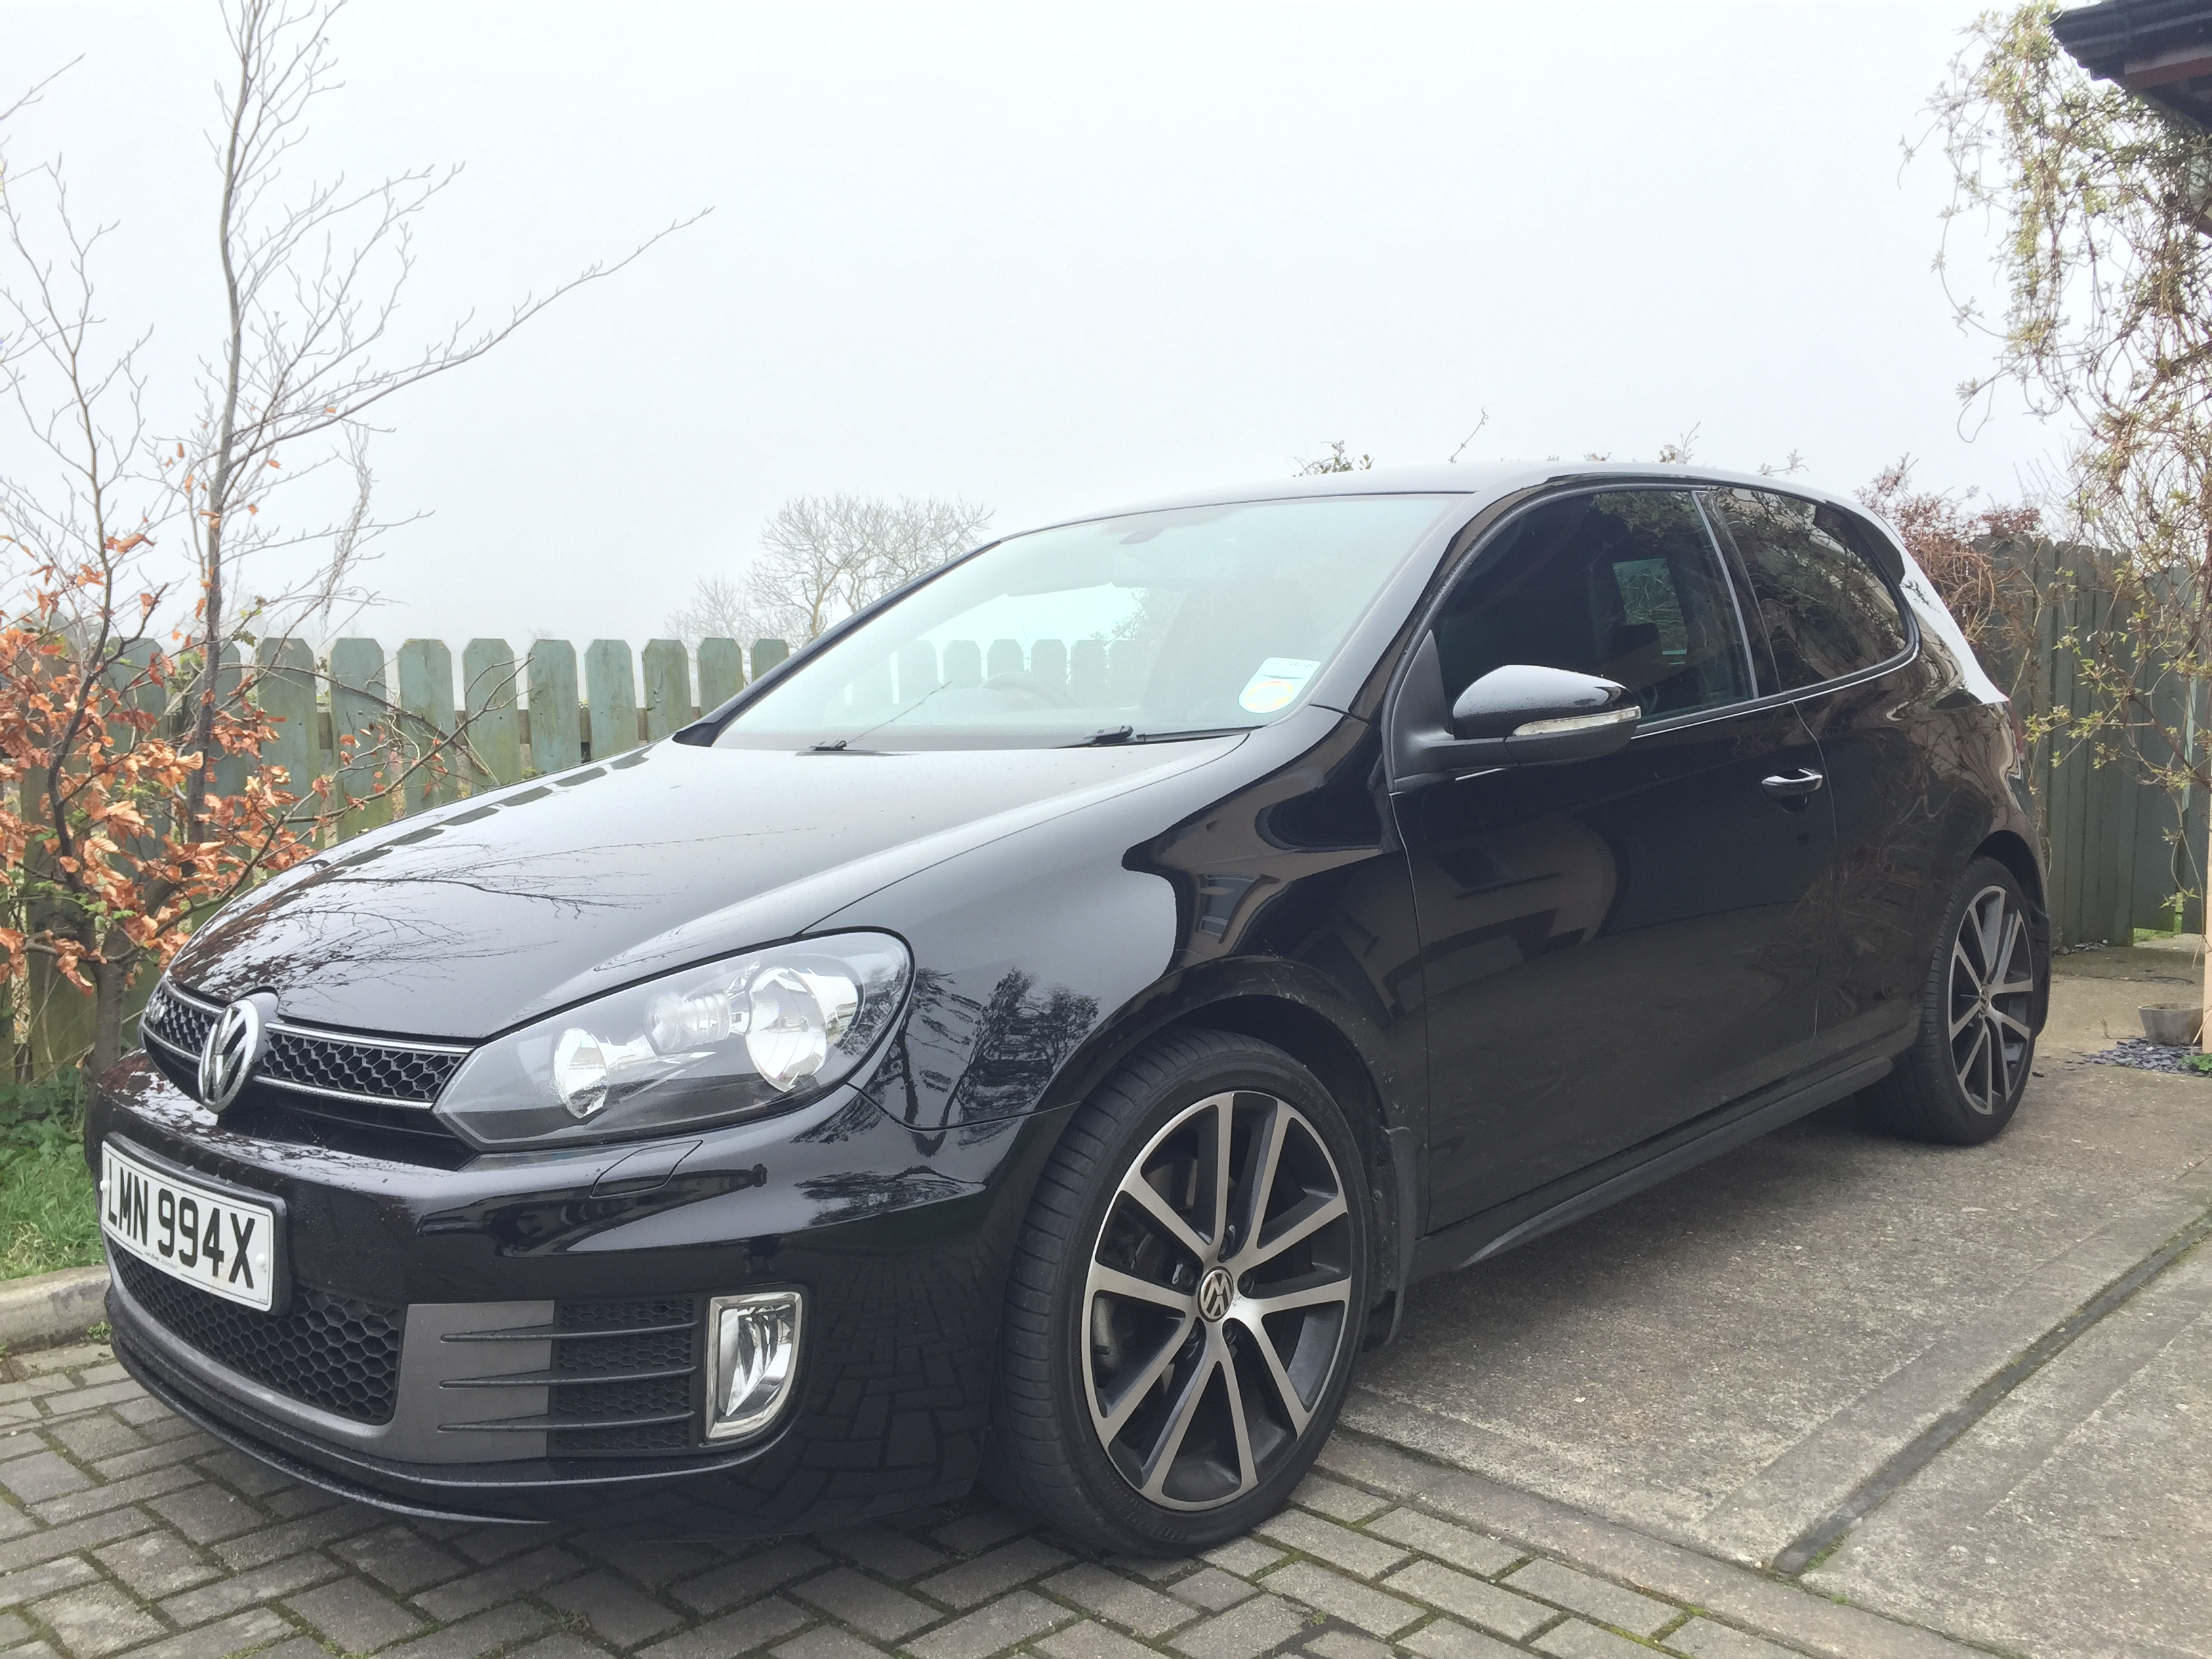 Volkswagen Golf GTD 2.0 from private